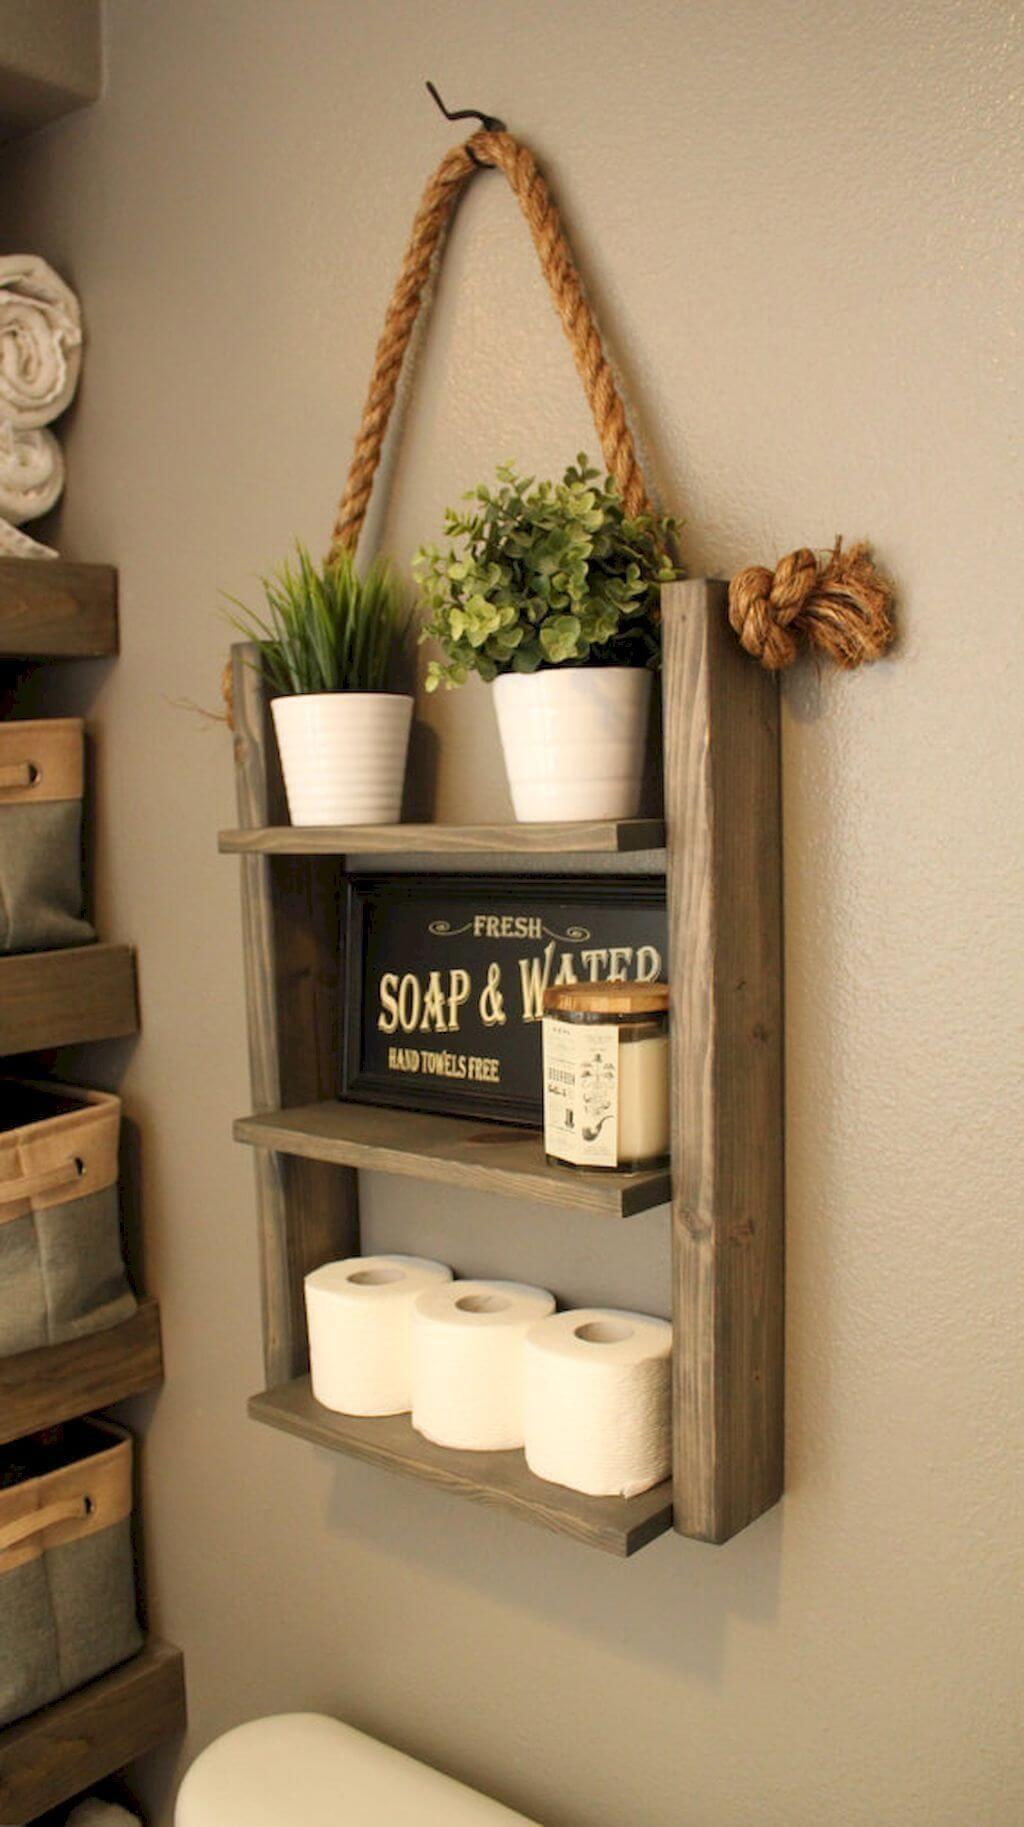 Bathroom Shelf Hung from a Rope